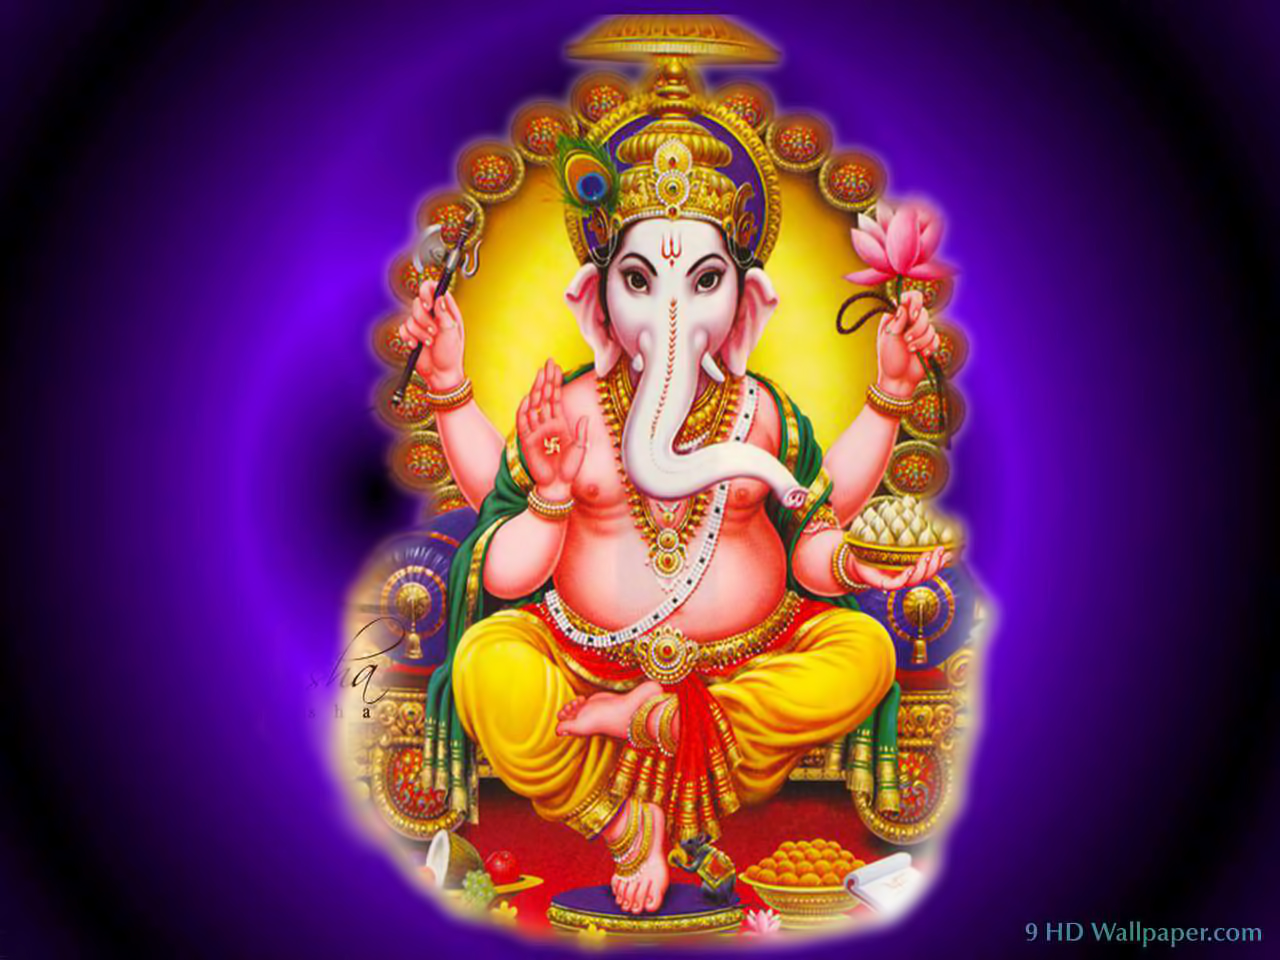 Lord Ganesha Pictures Download: Hare Krishna: Shri Ganesh Wallpaper-5